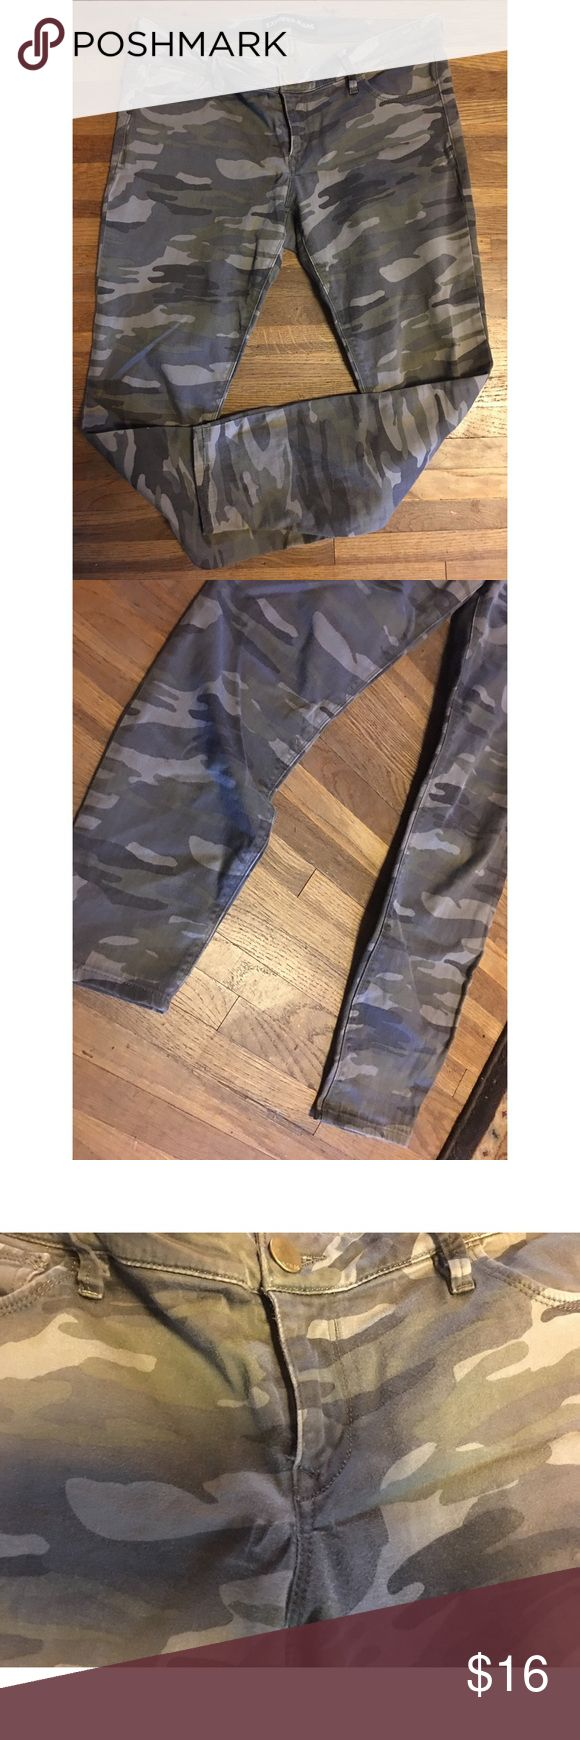 Camo skinny jeans Camo skinny jeans!! From express. They're the ankle kind. Super comfy. Small stretch mark by zipper. Express Jeans Ankle & Cropped